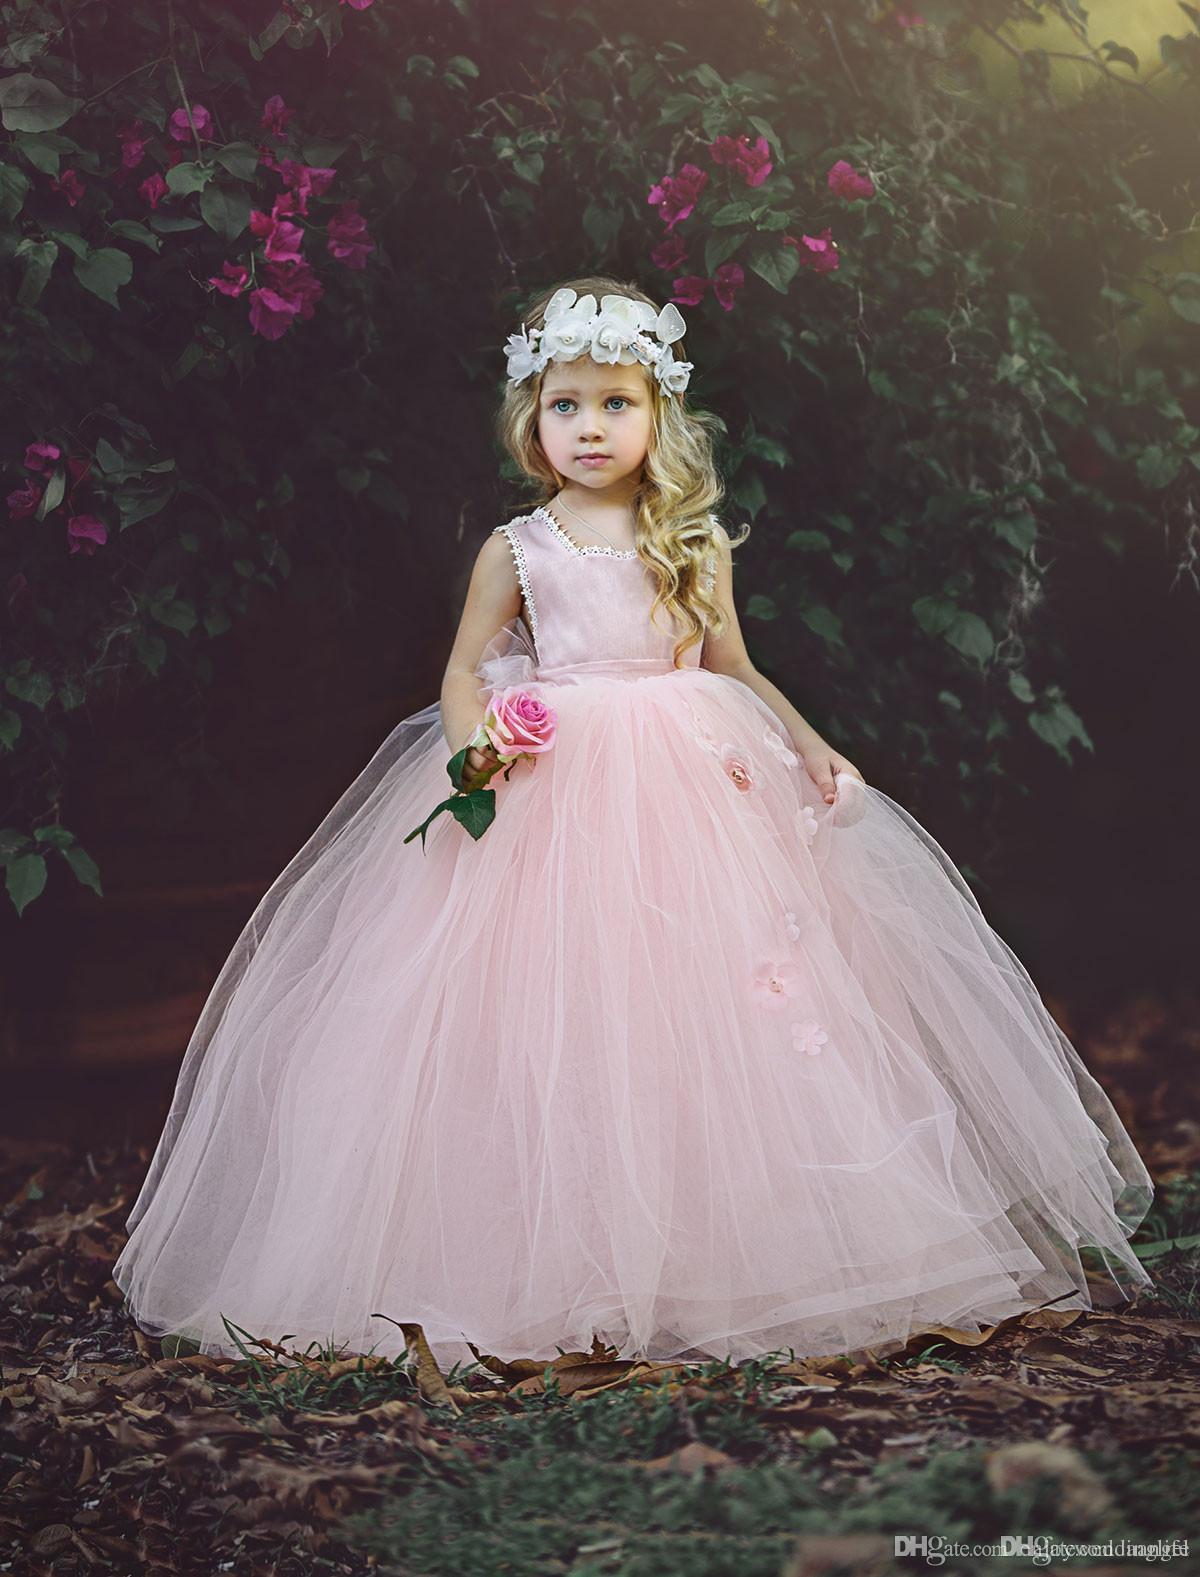 Princess Pink Sleeveless Ball Gown Tulle Flower Girl Dresses 2017